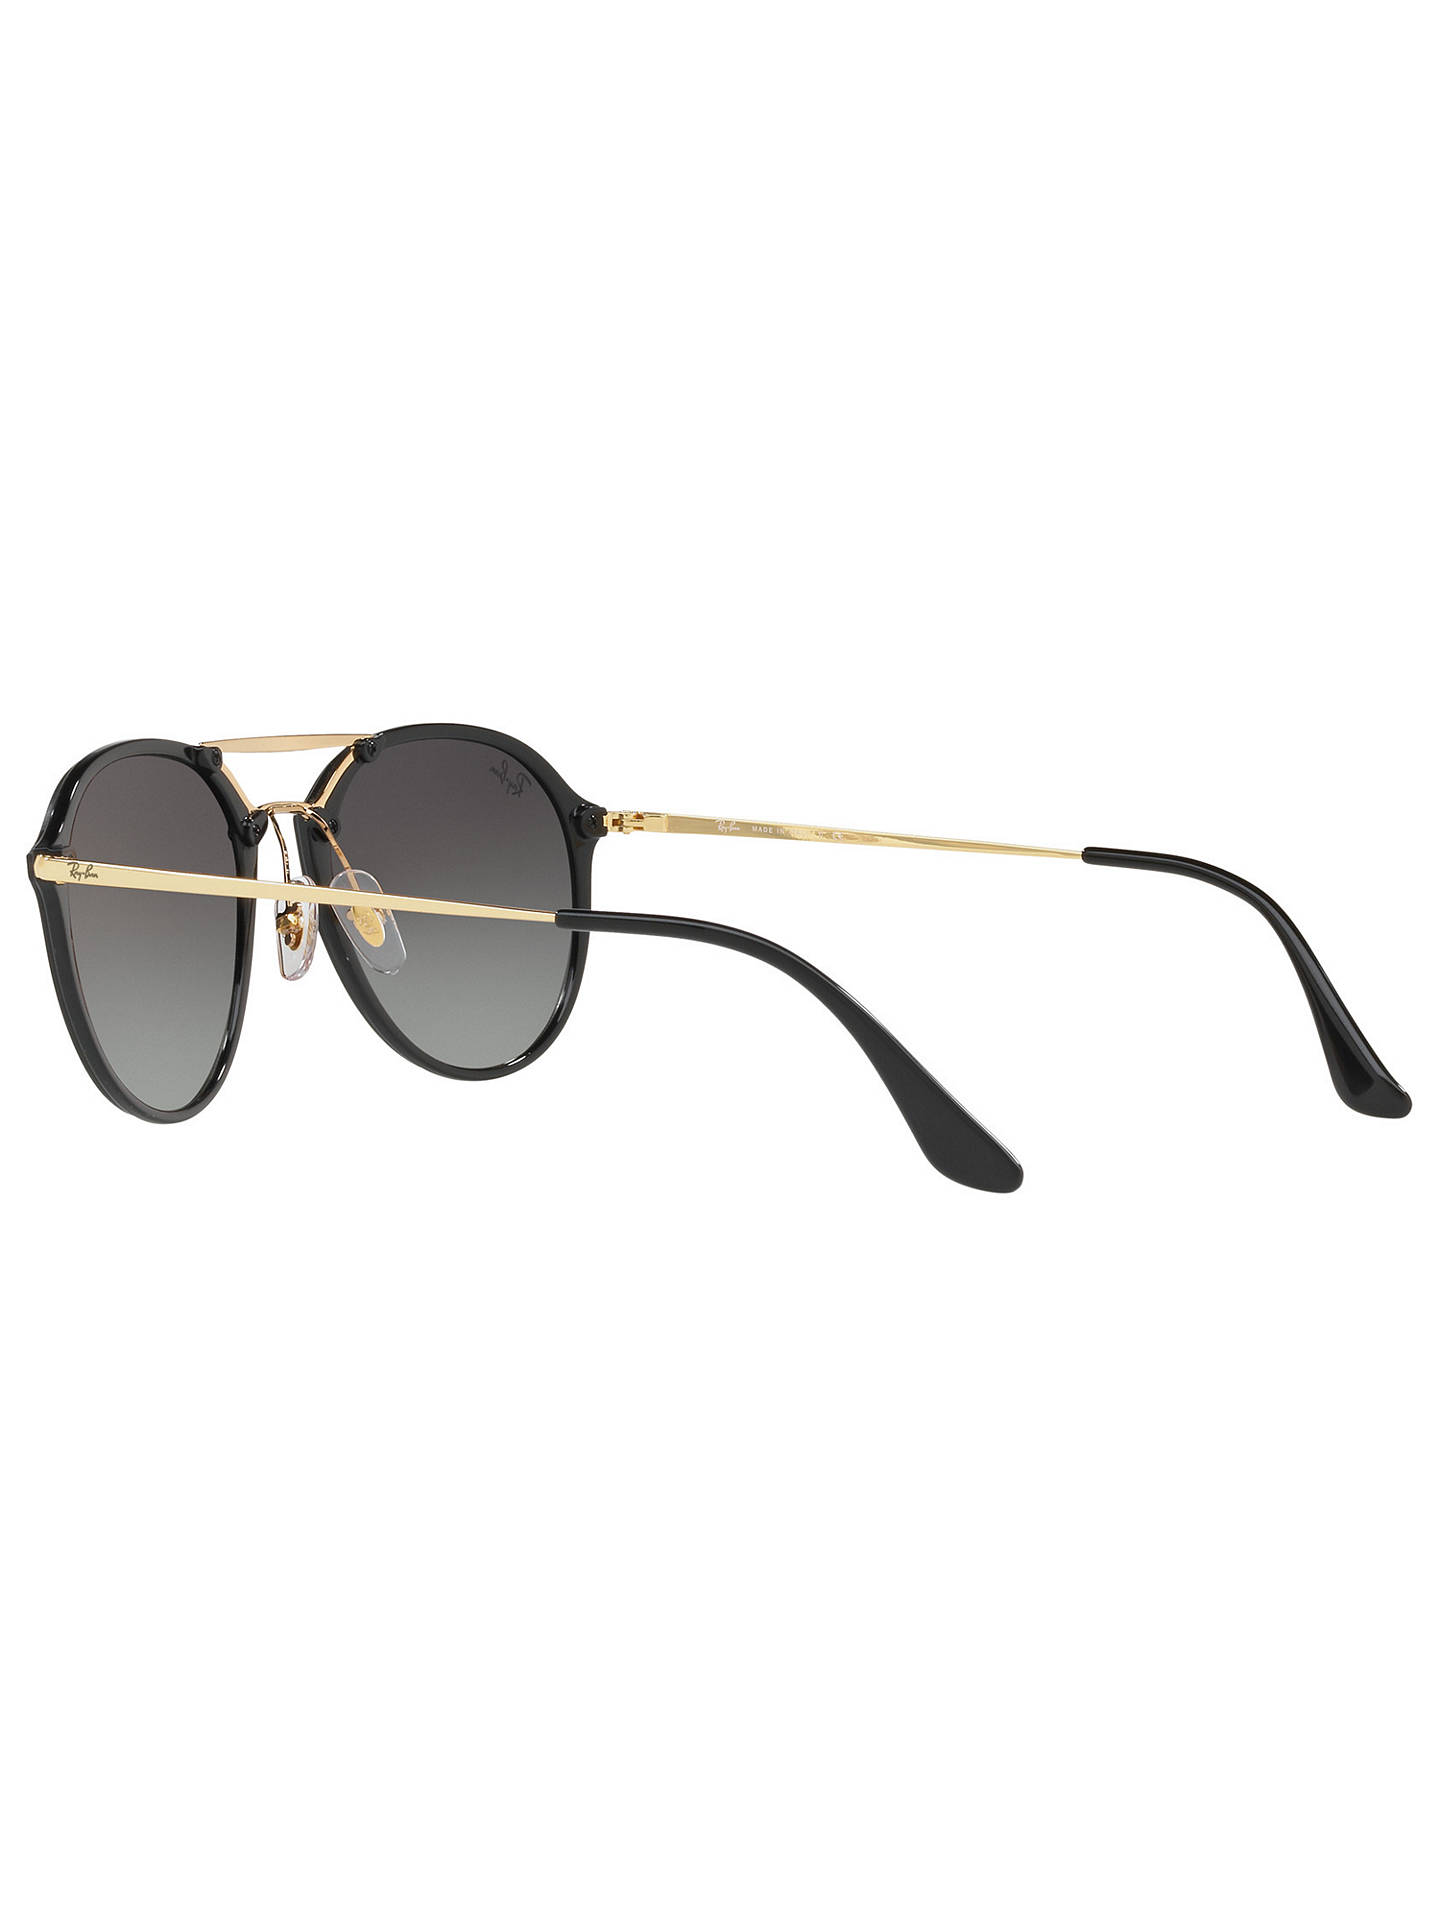 BuyRay-Ban RB4292N Blaze Double Bridge Oval Sunglasses, Black/Grey Gradient Online at johnlewis.com